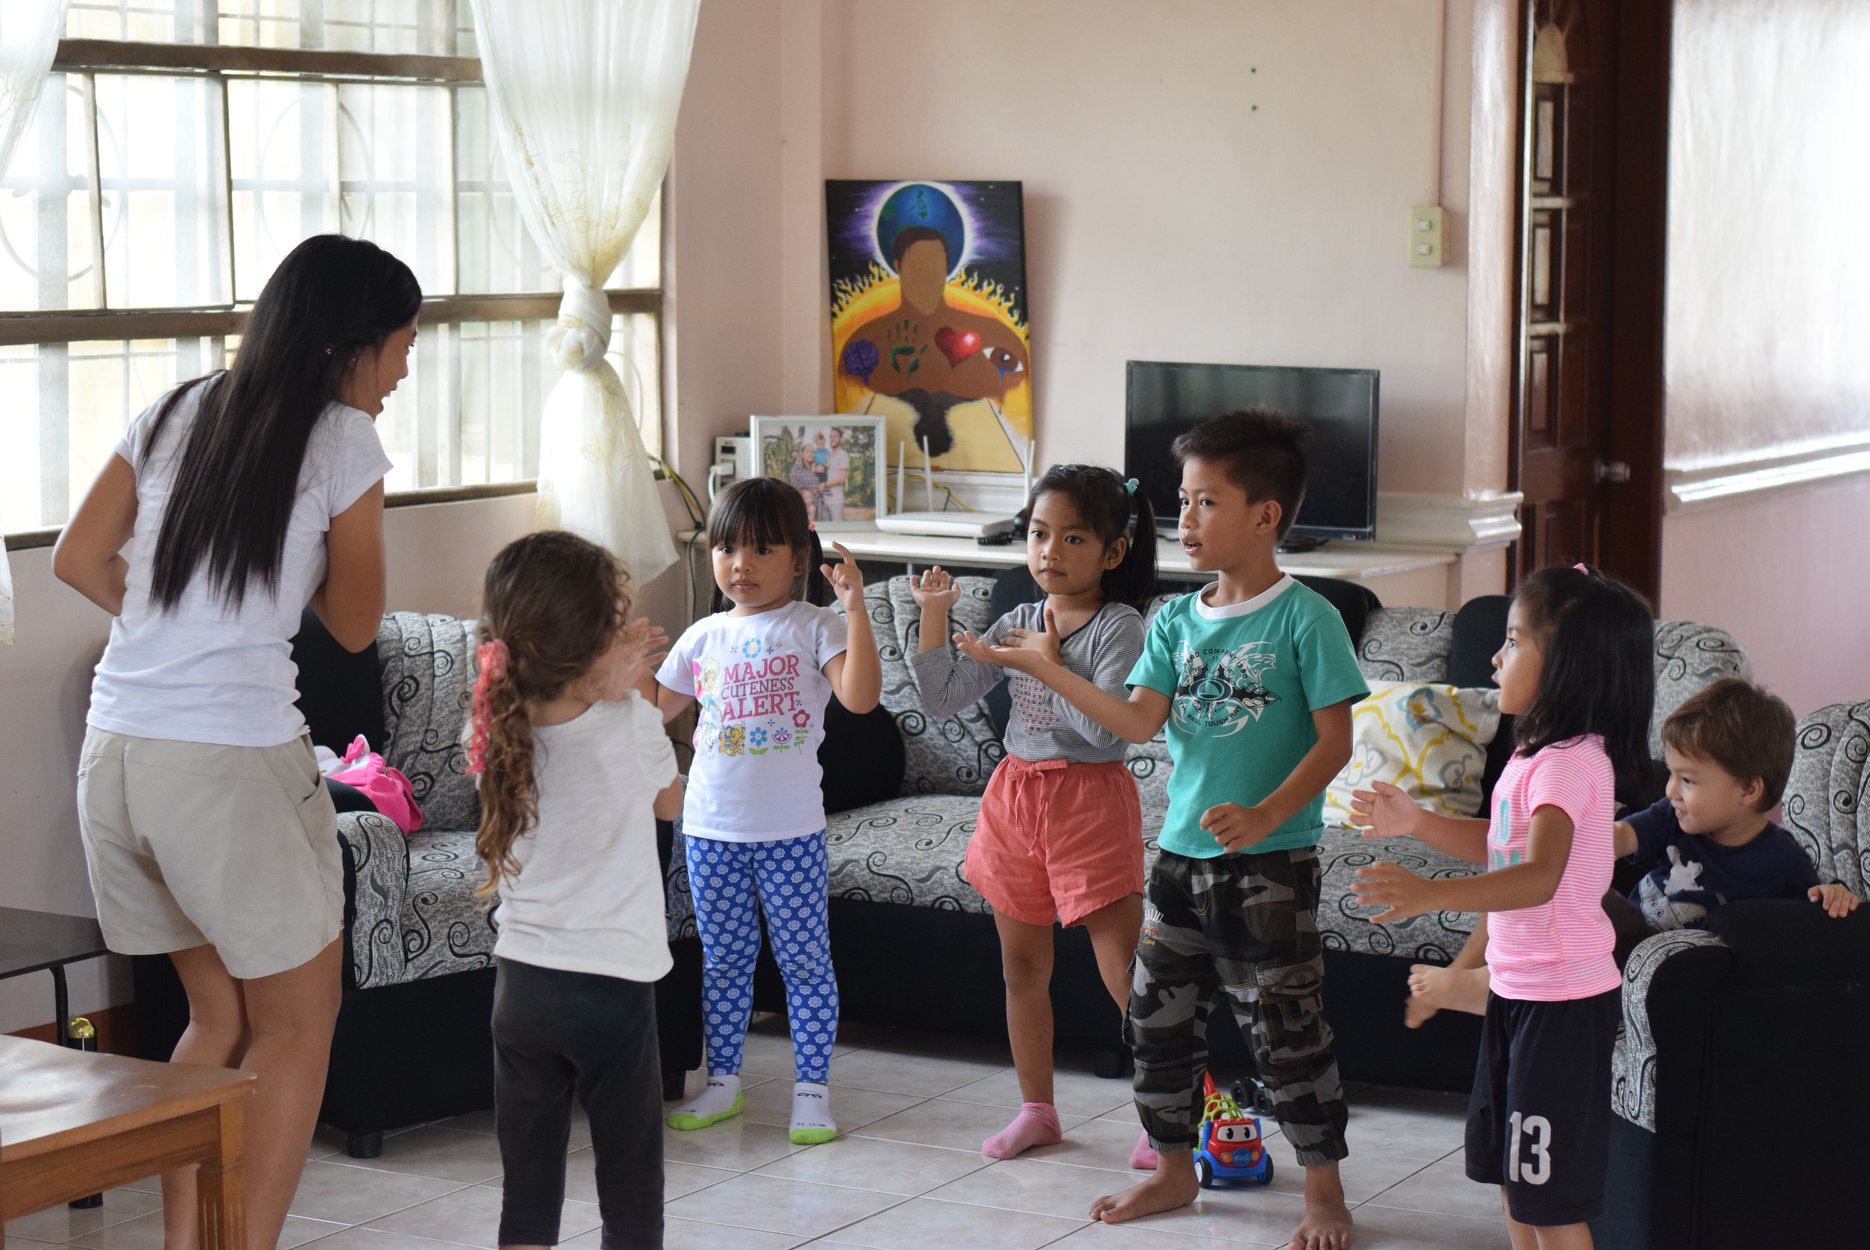 Irish Dagami spends two hours every Sunday with Tahanan Kidz dancing, singing, and making the most of their time together!